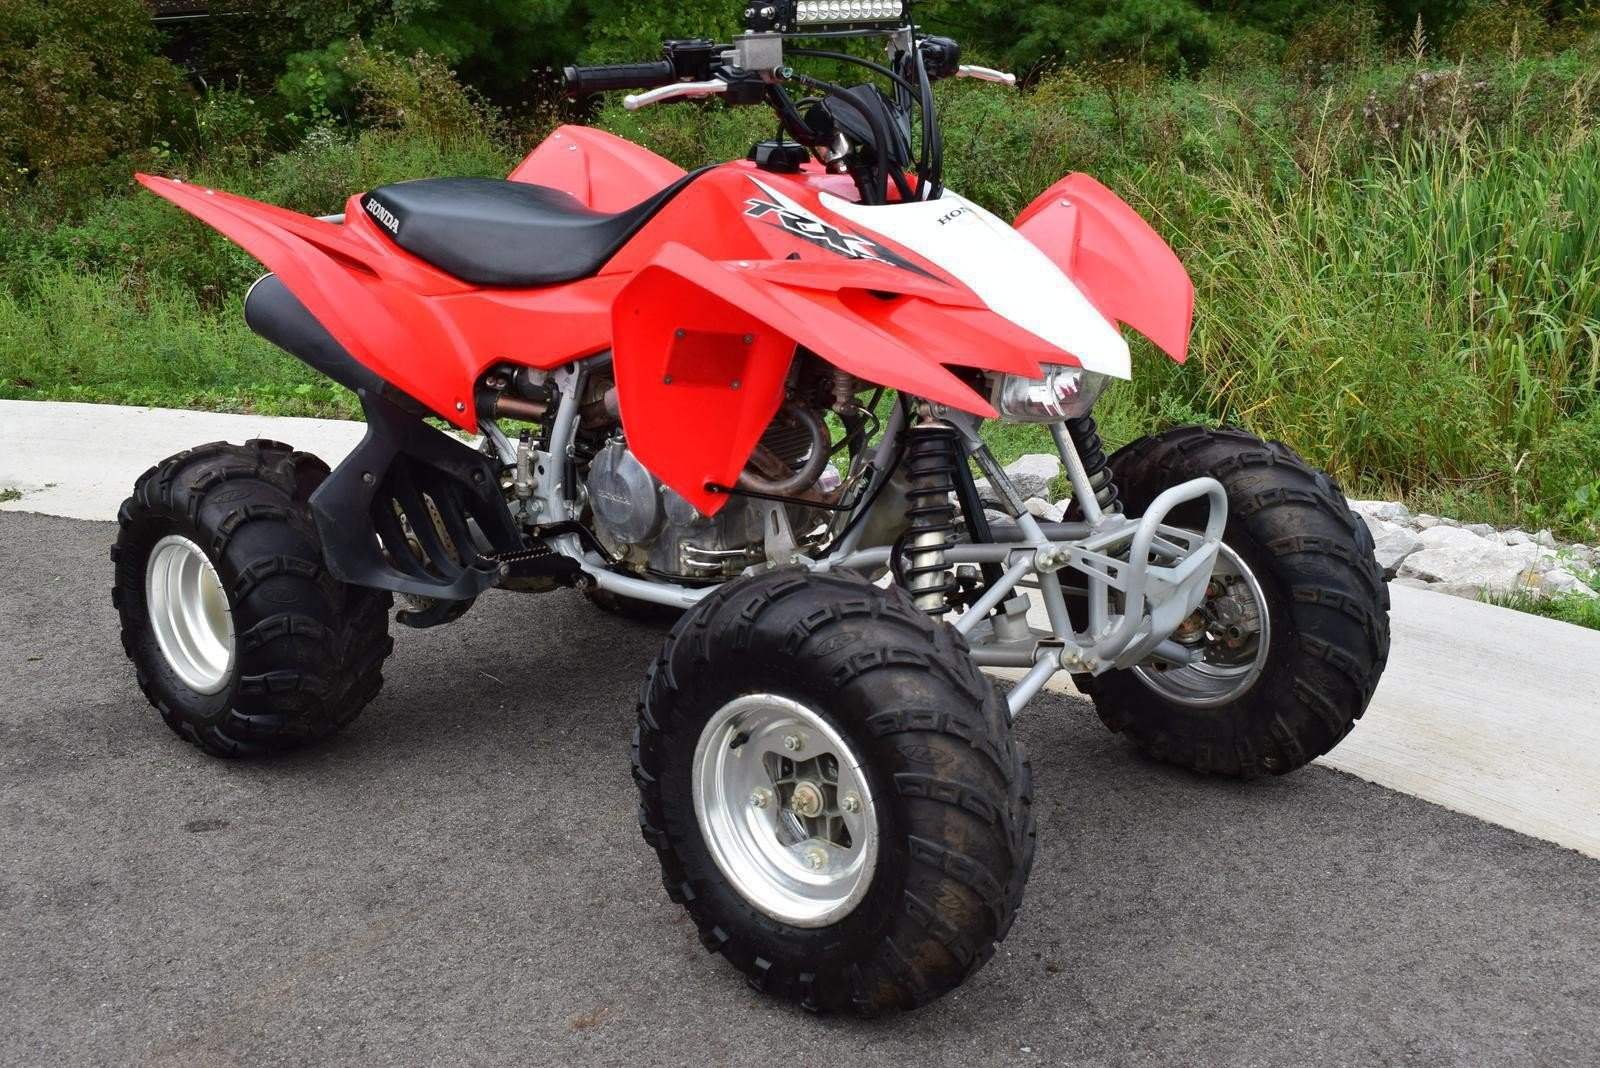 2013 Honda Trx400x Motorcycles For Sale Motorcycles On Autotrader